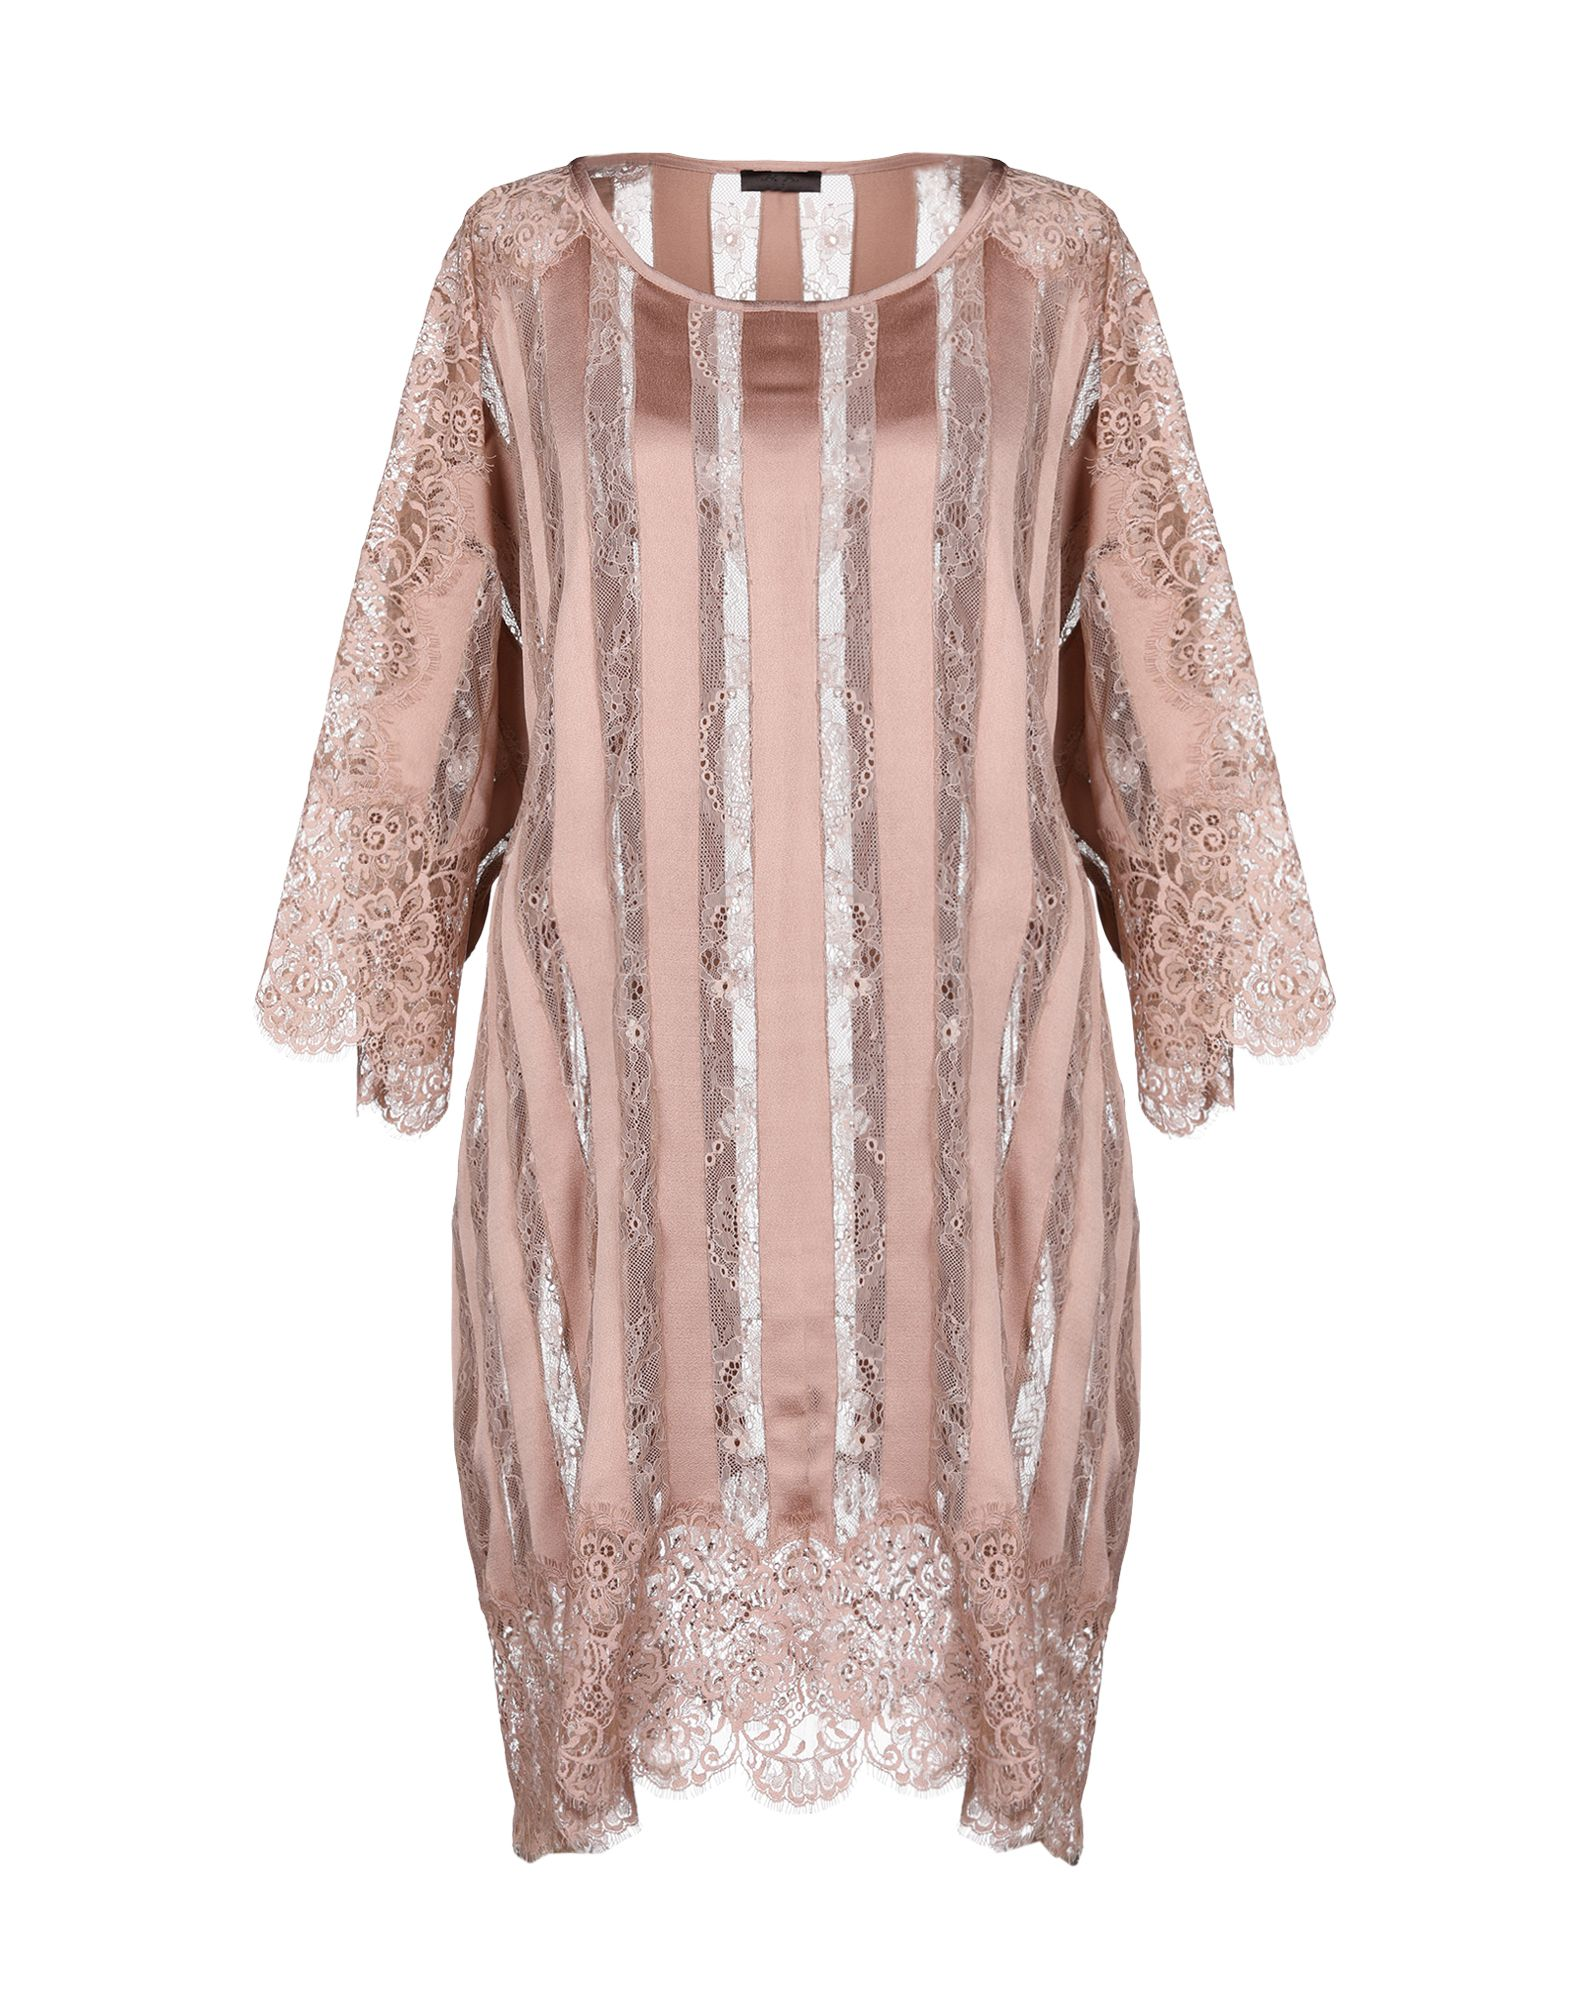 AMEN COUTURE Short Dresses in Pale Pink